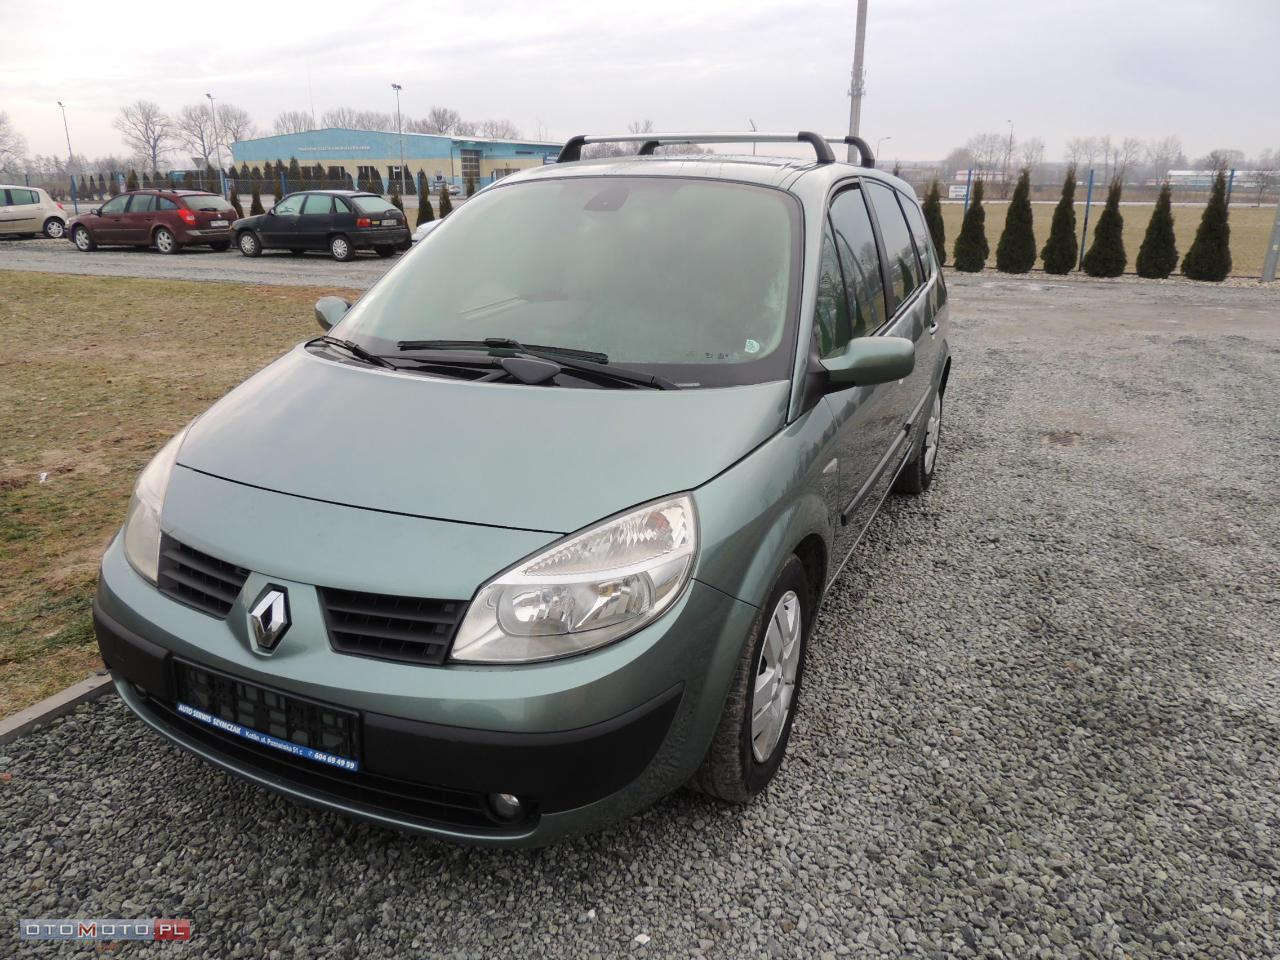 Renault Grand Scenic 1.5 Dci 7-osób